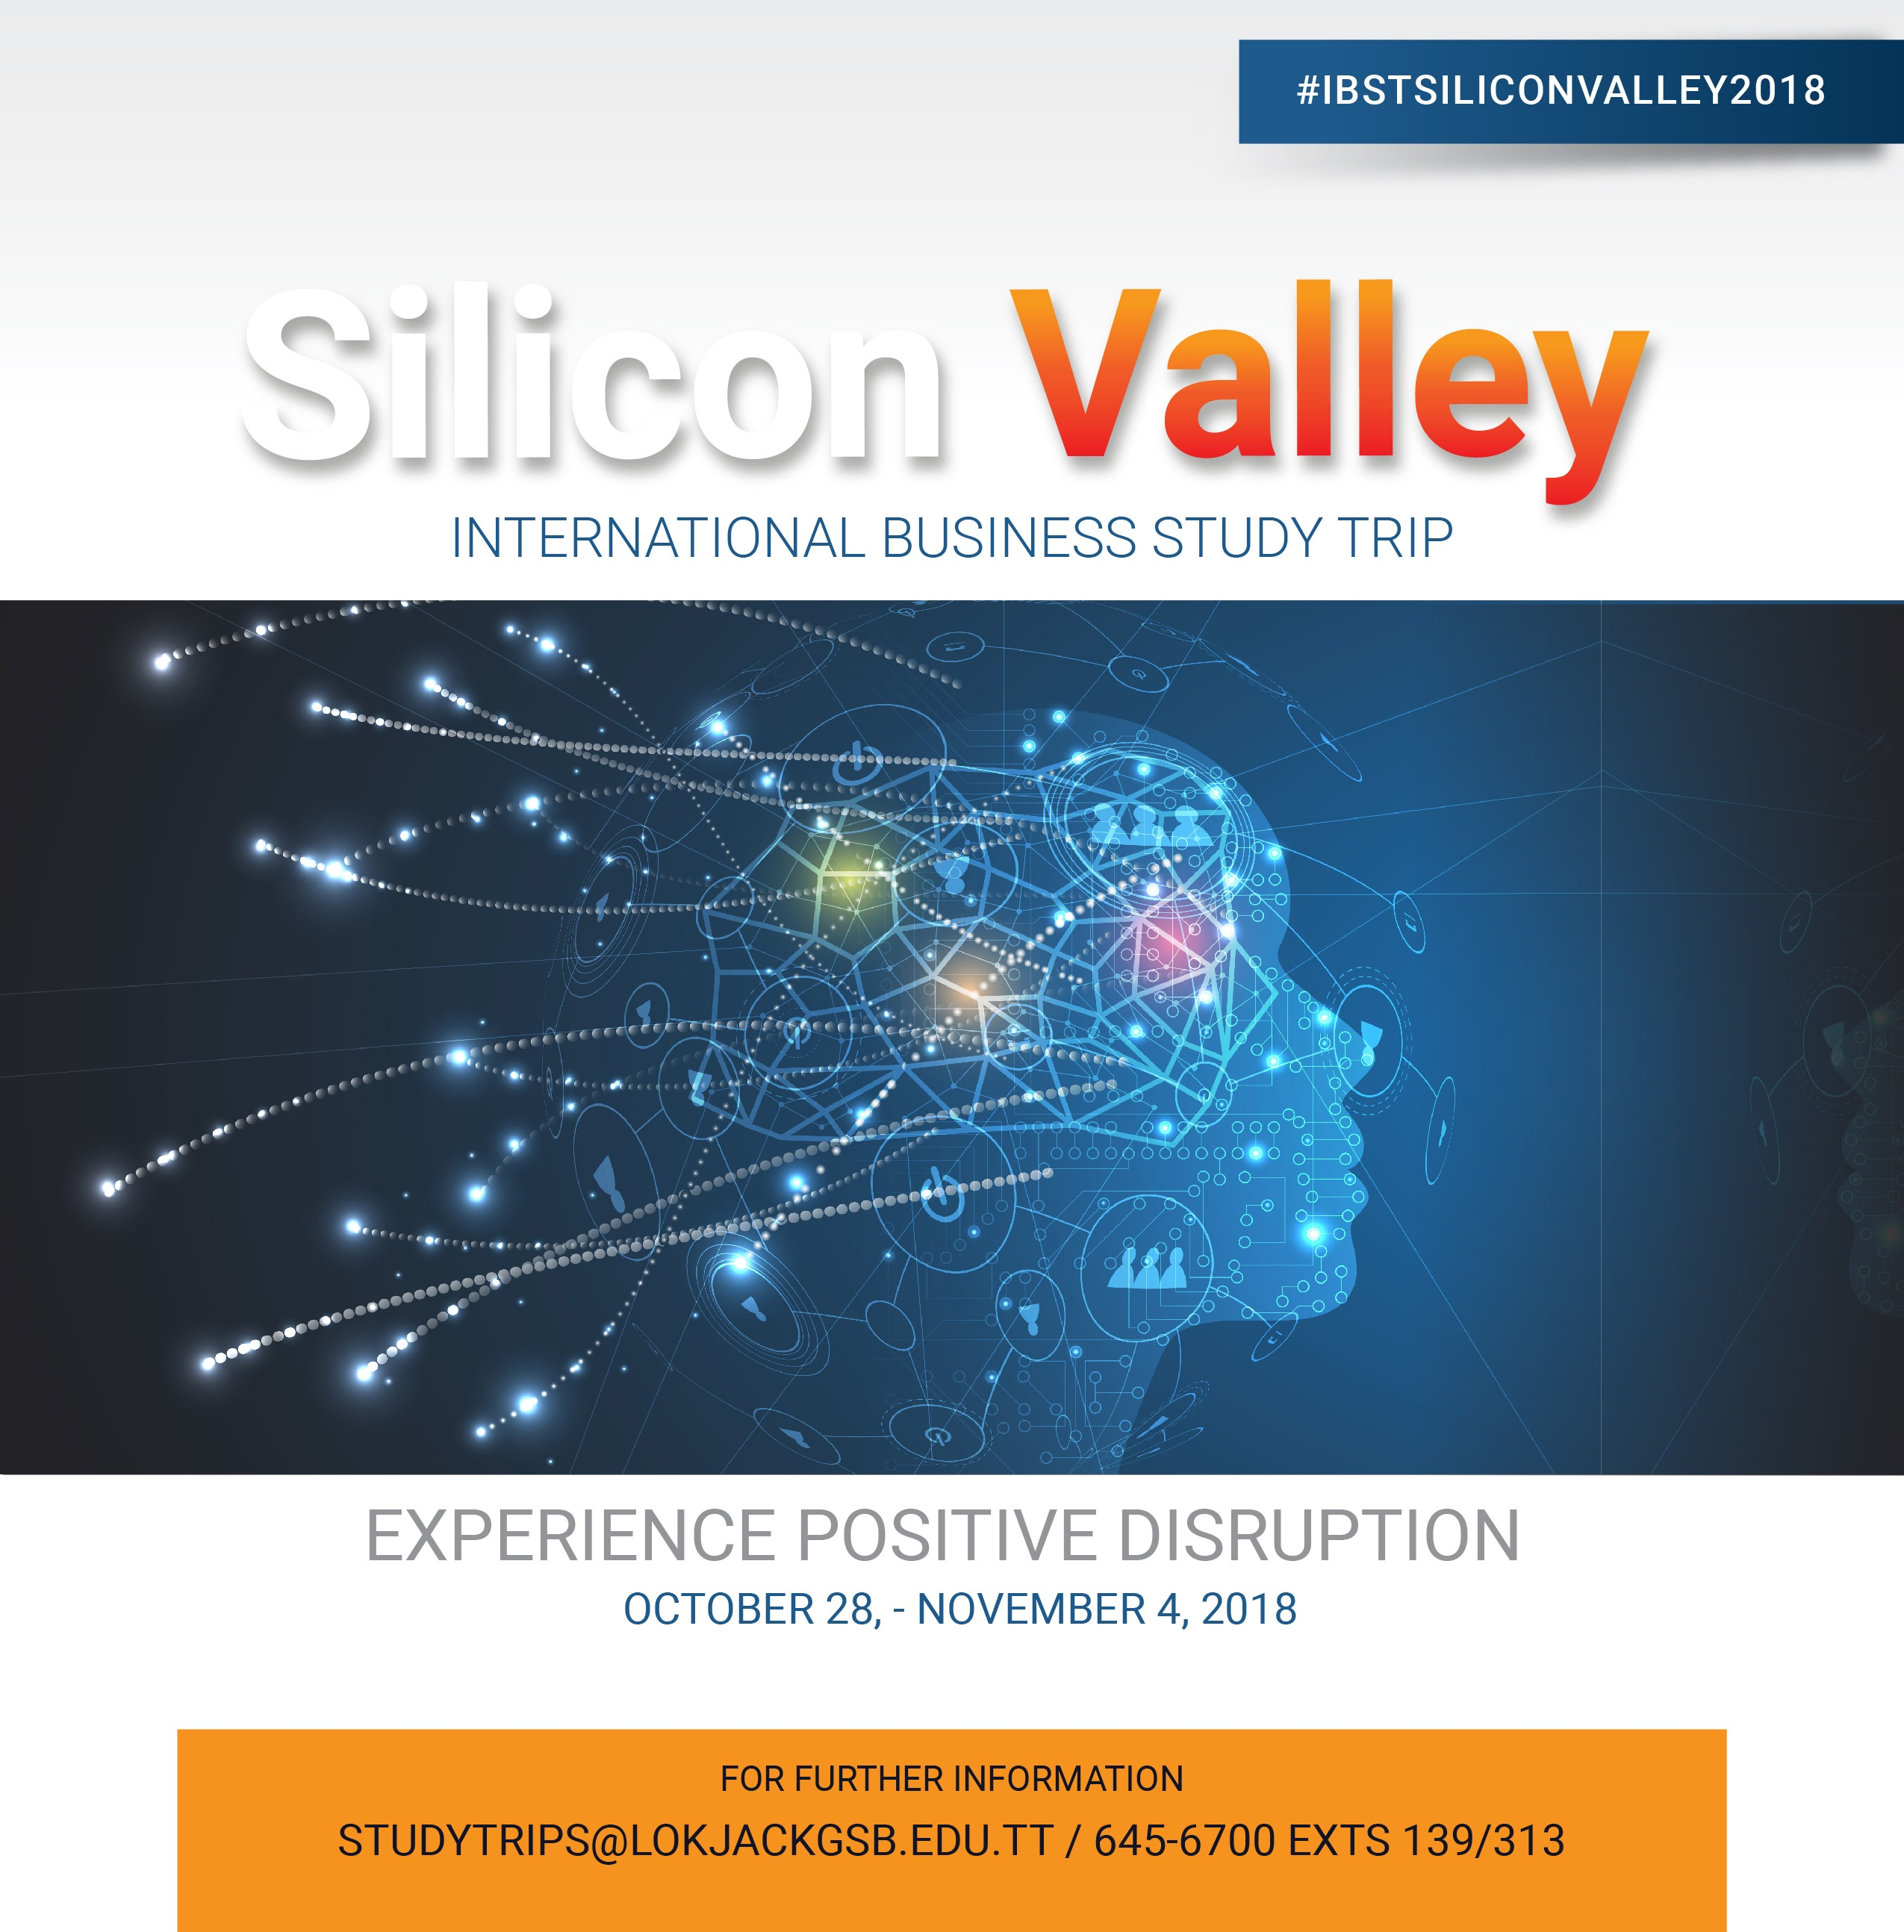 Silicon Valley eshot revised-01 (002)-1